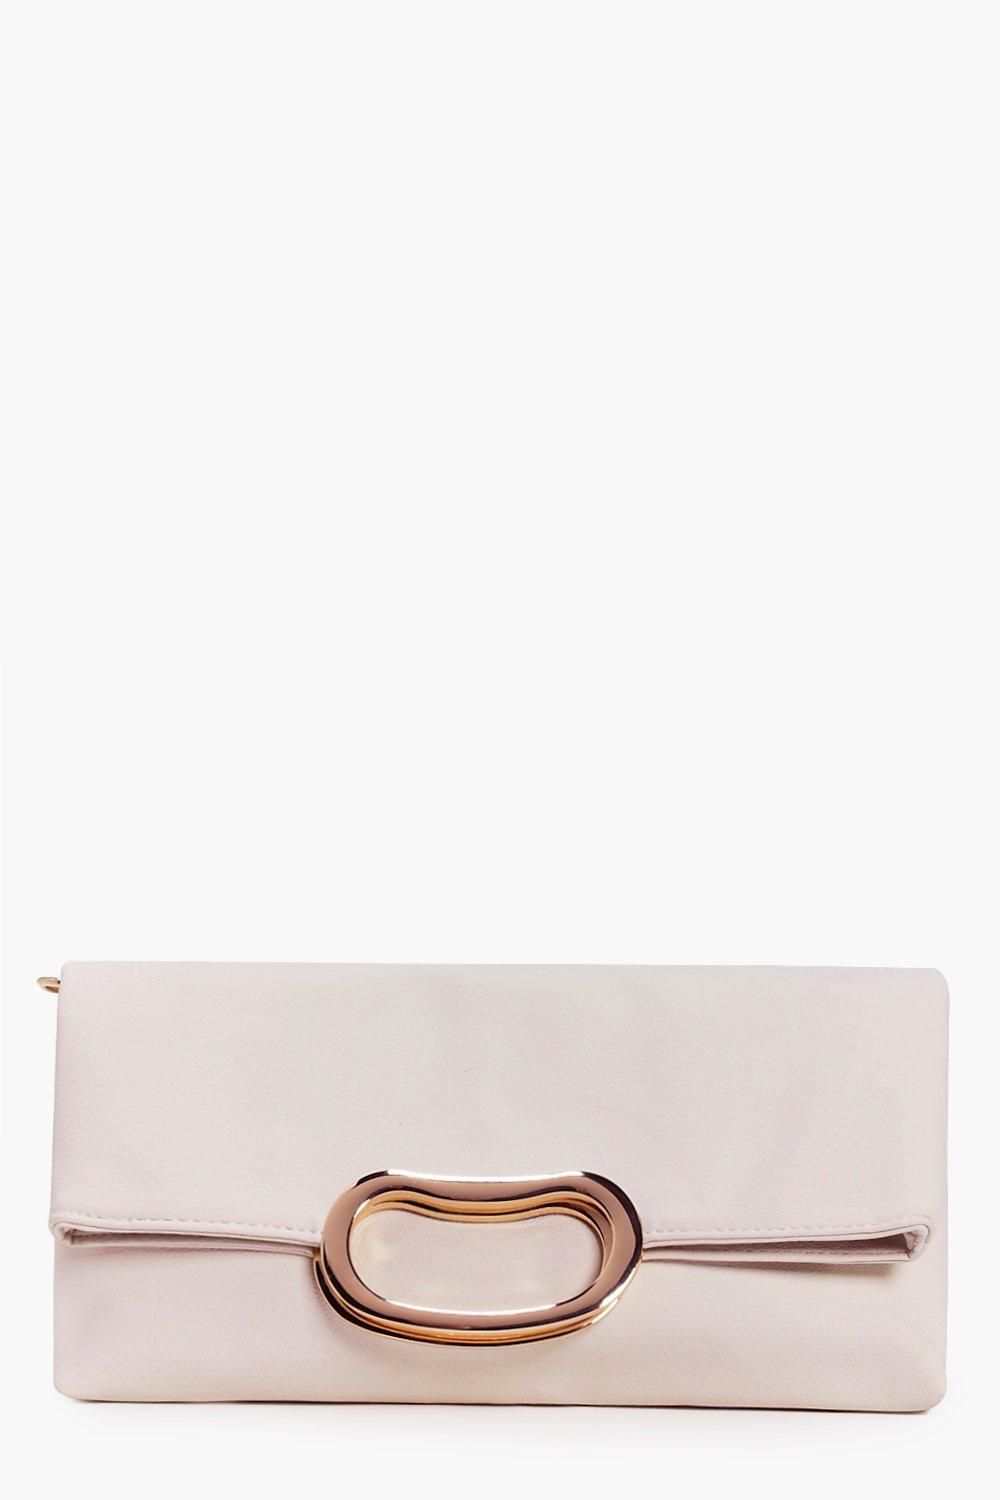 Libby Fold Over Metal Opening Clutch Bag